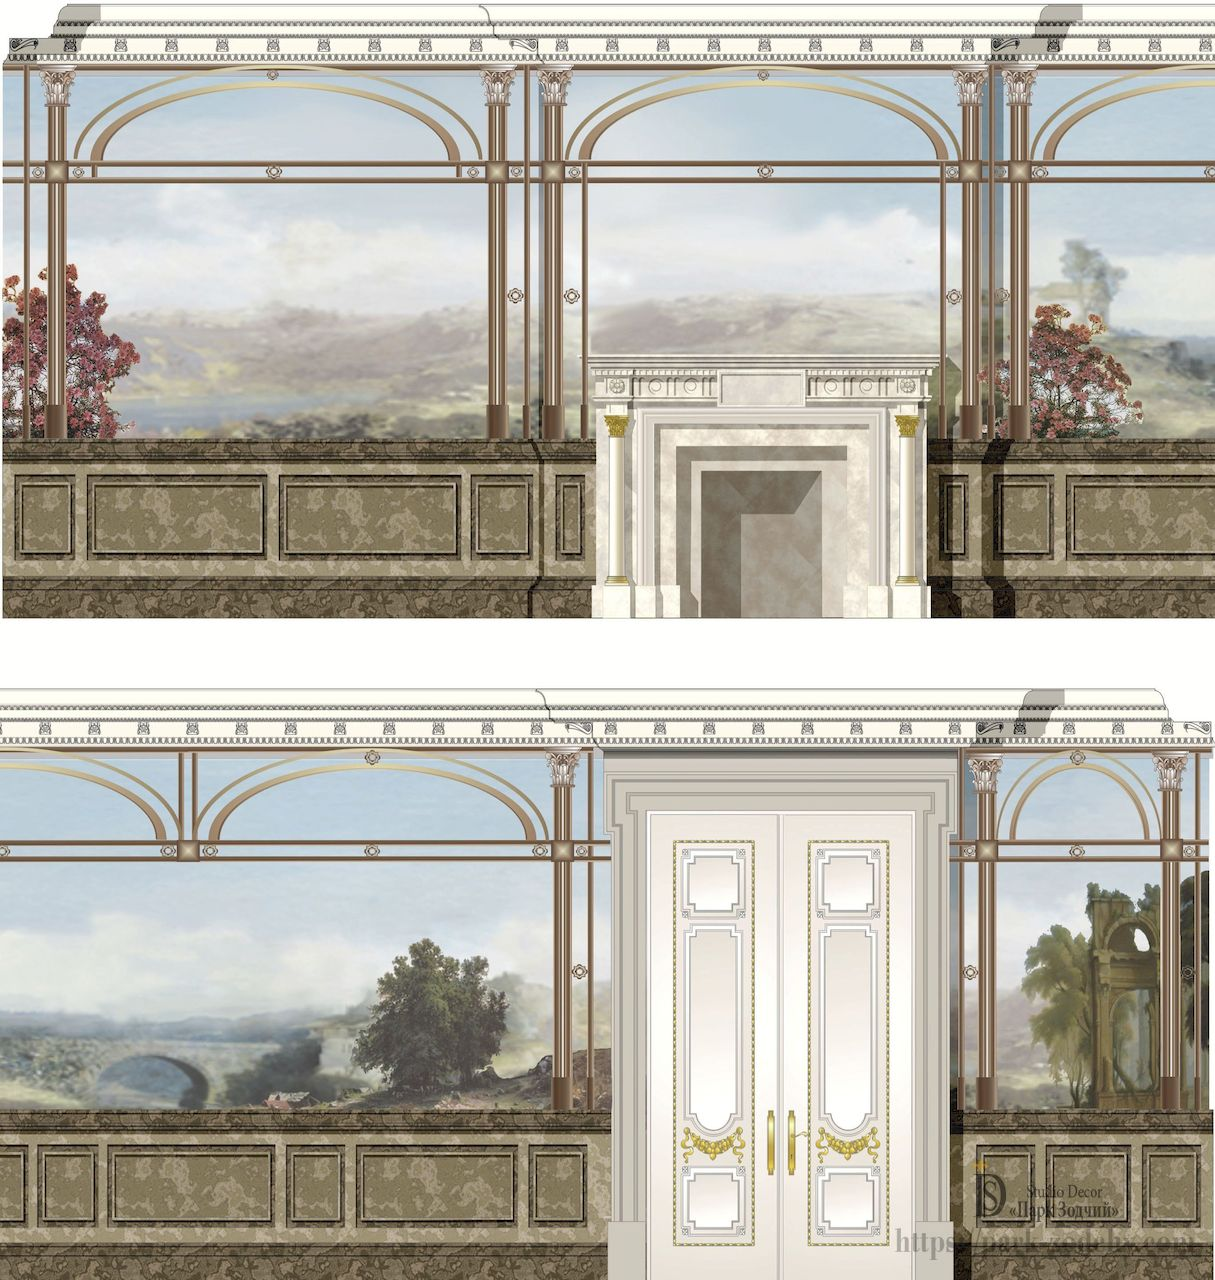 Draft versions of the murals trompe l'oeil to make the room seem bigger